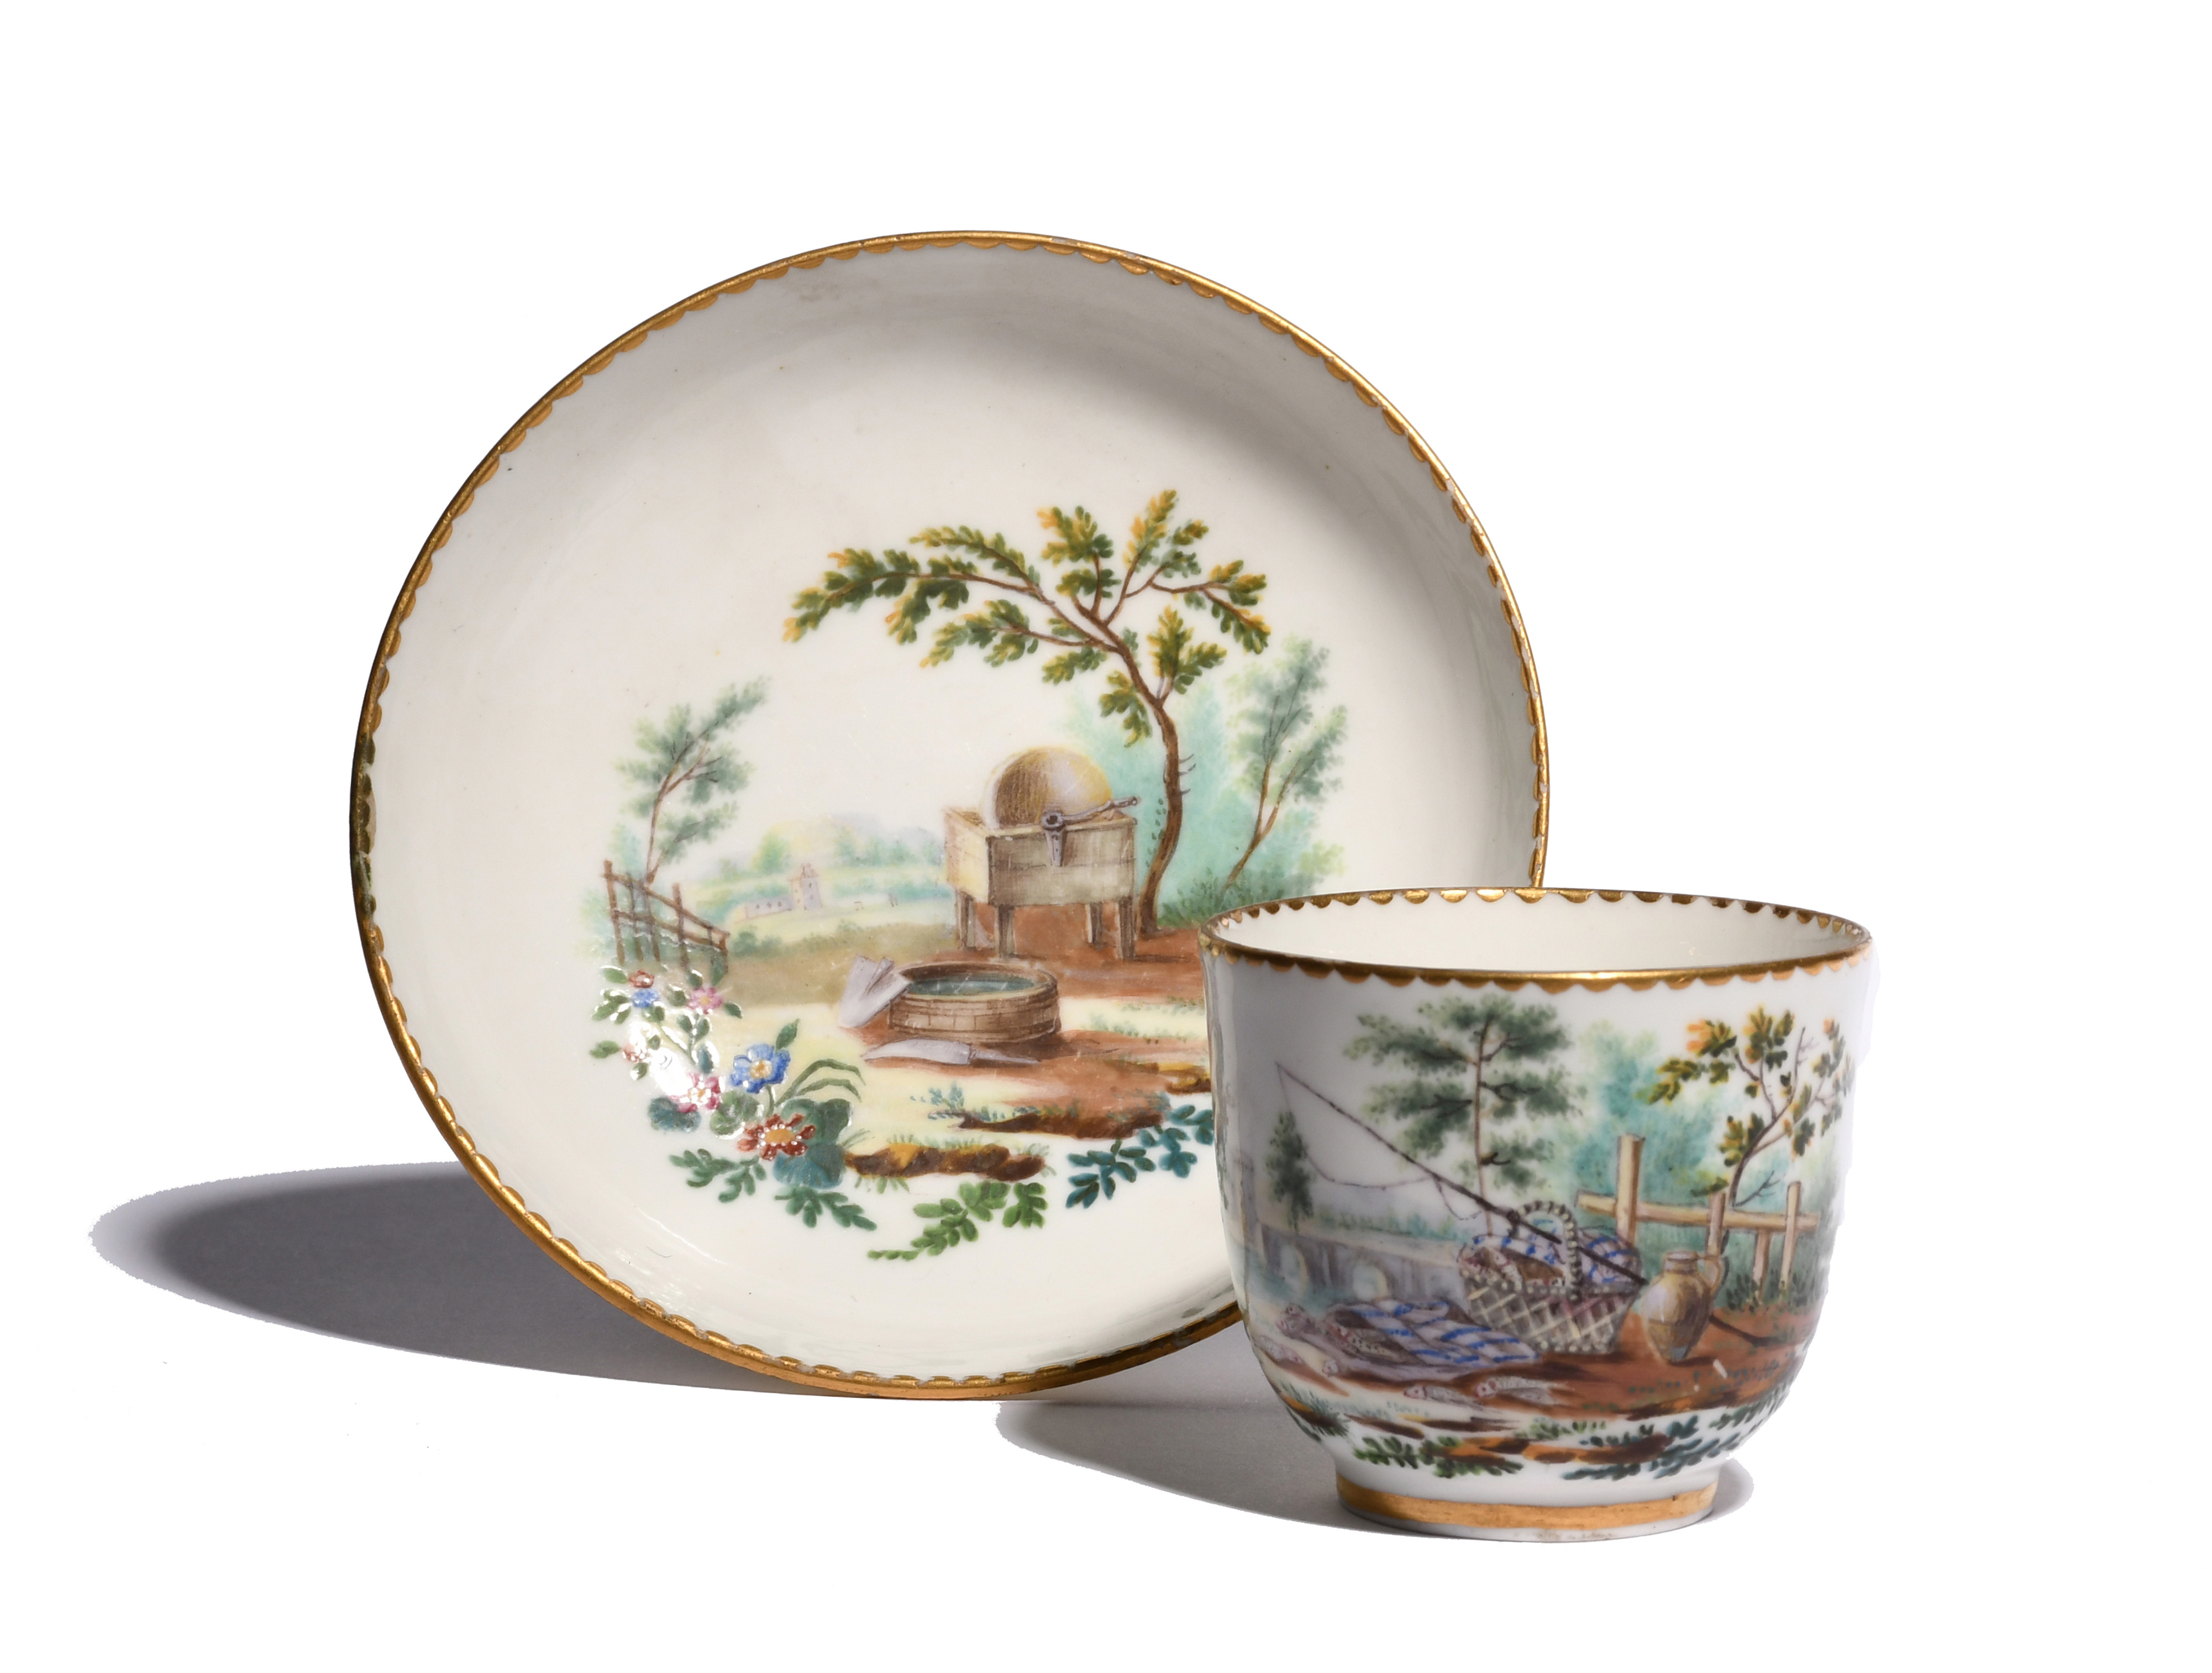 A Sèvres coffee cup and saucer c.1760, painted perhaps by André Vincent Vielliard, the cup painted